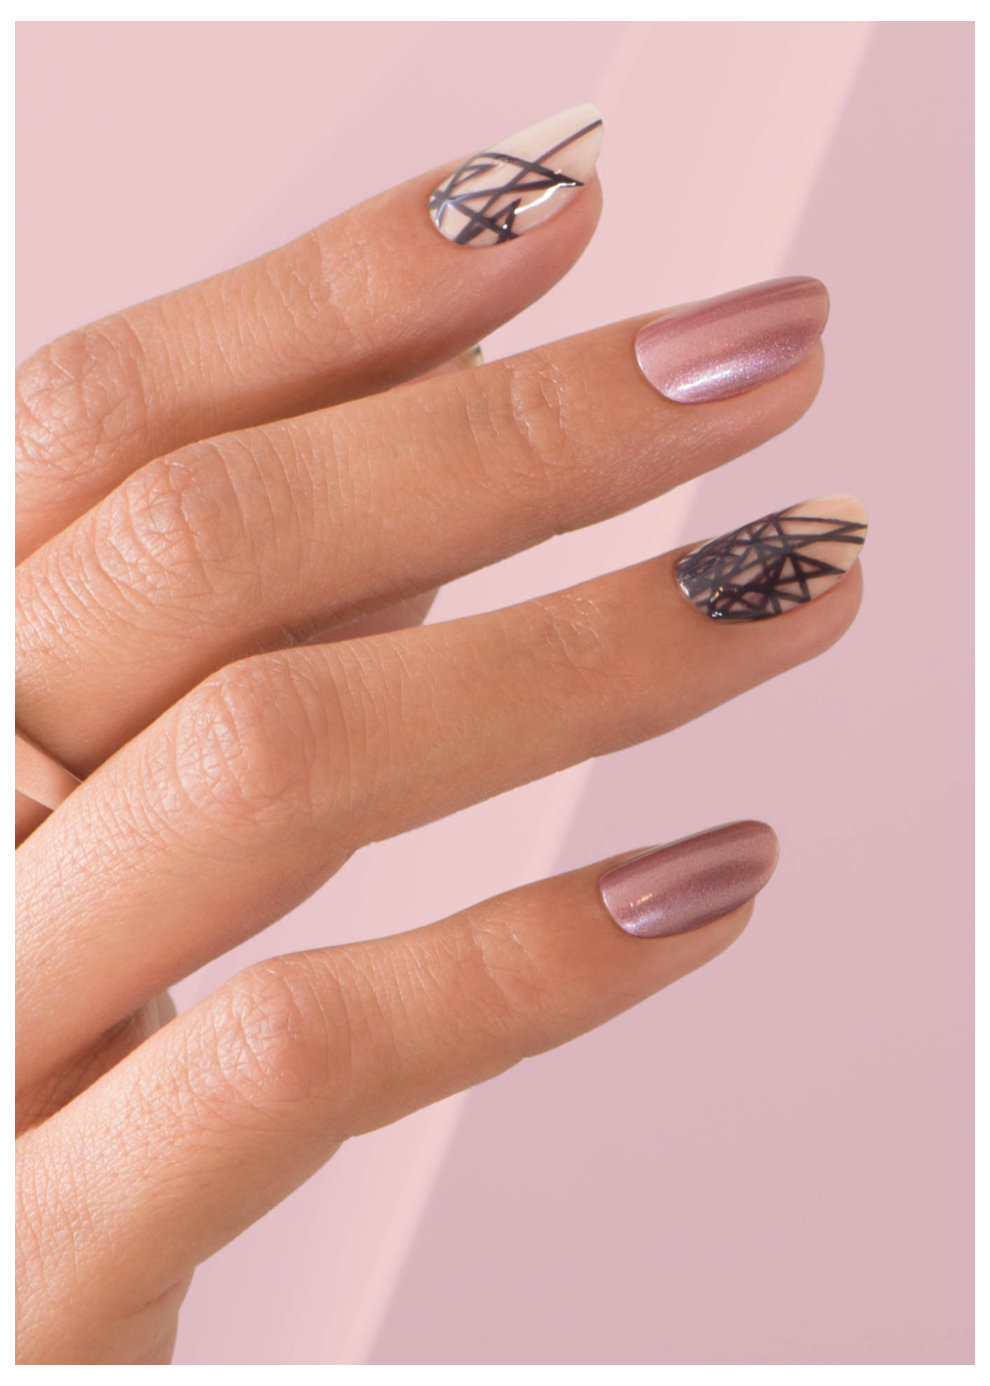 nails magazine nail salon techniques nail art business - HD 990×1386